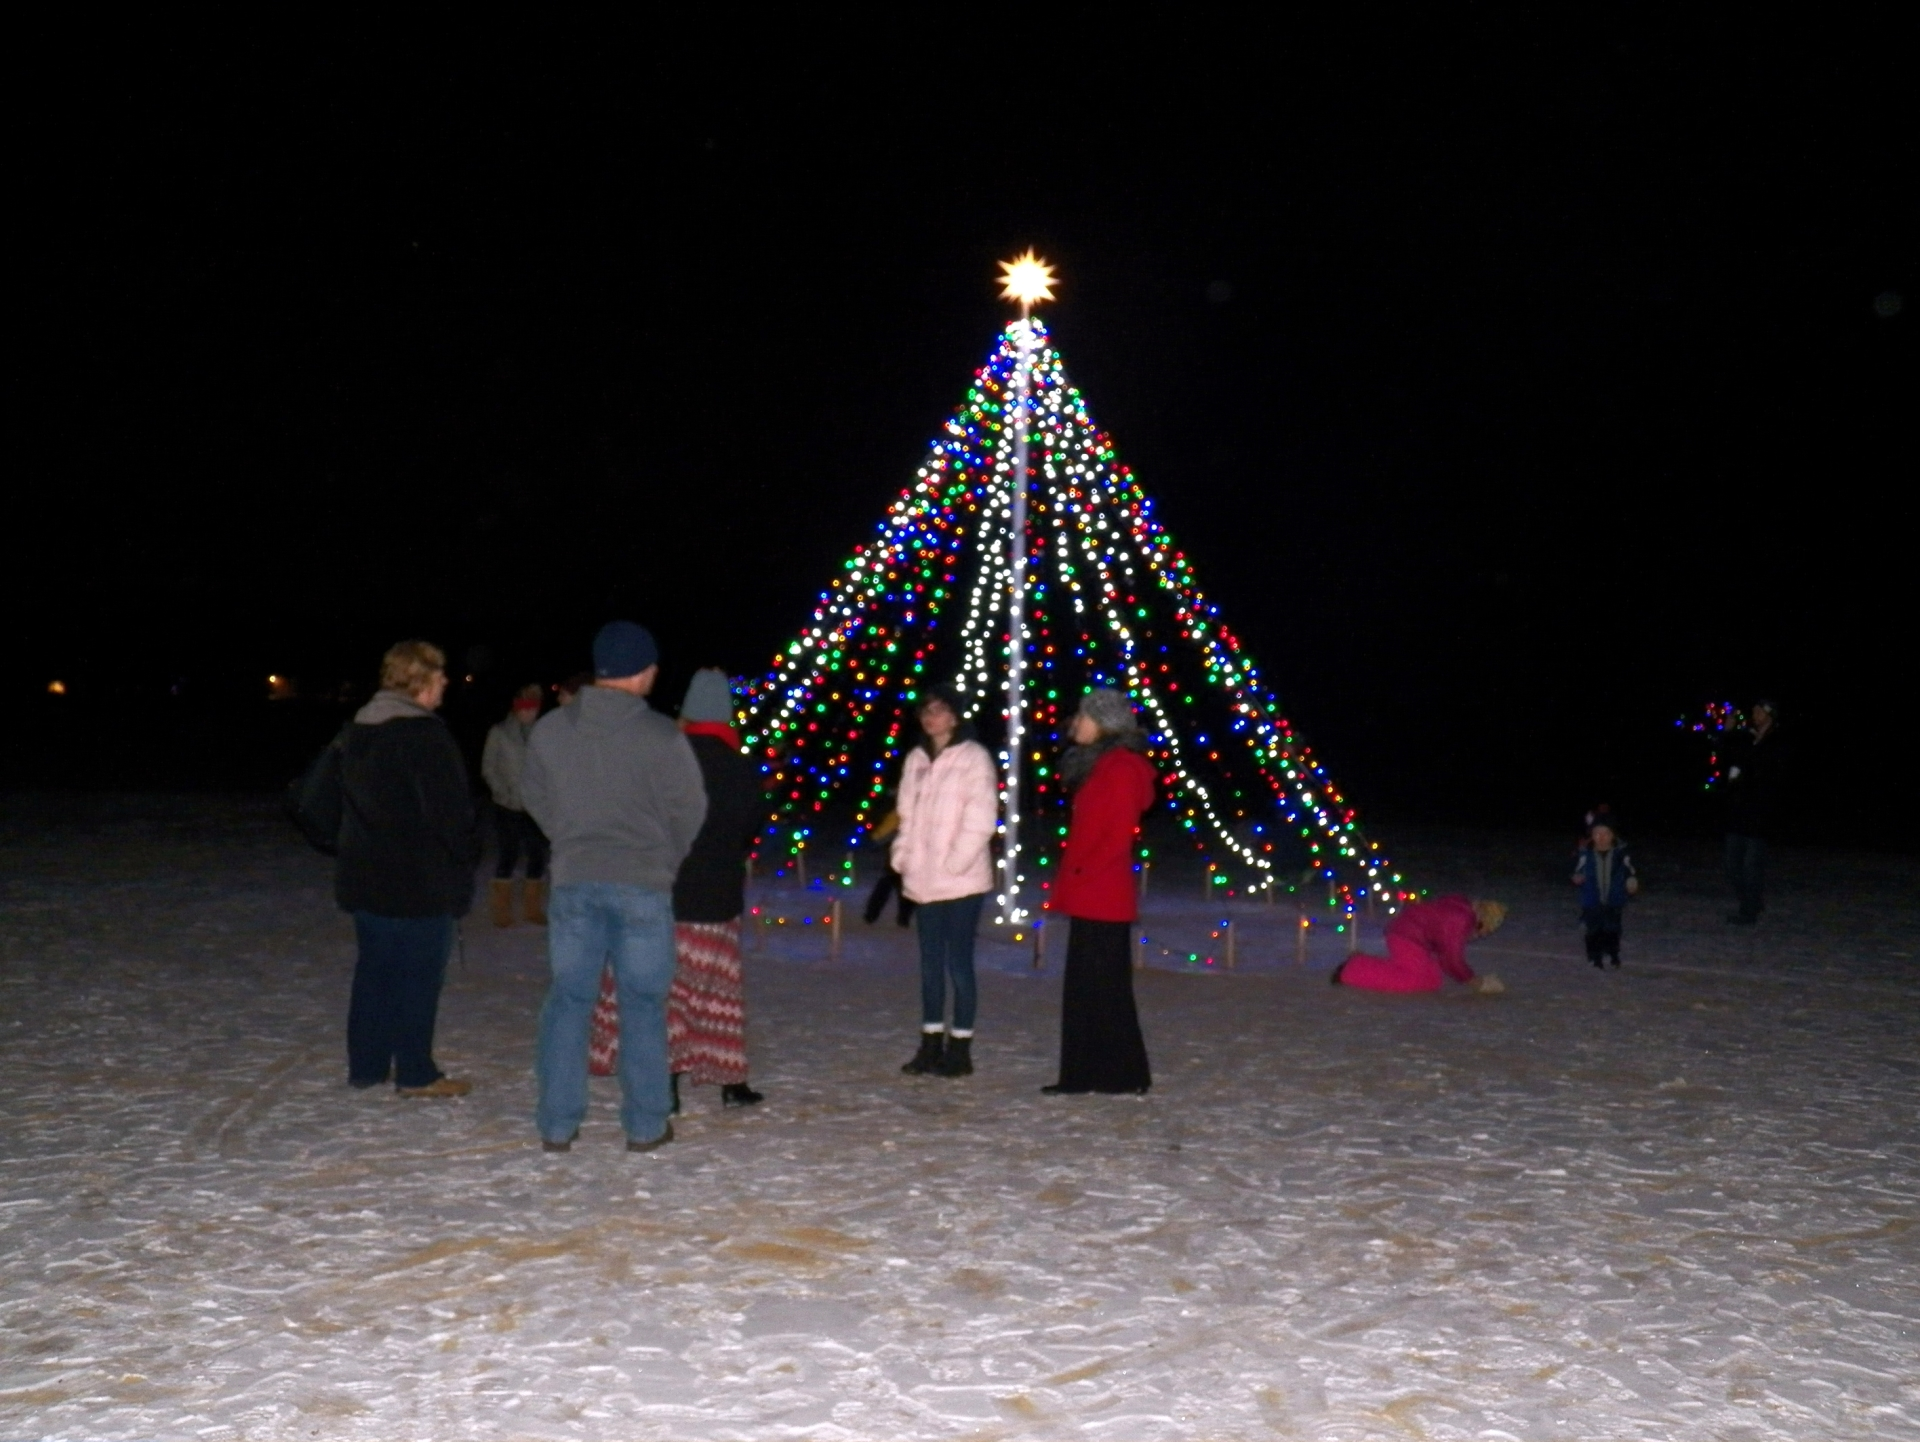 The lighted big tree